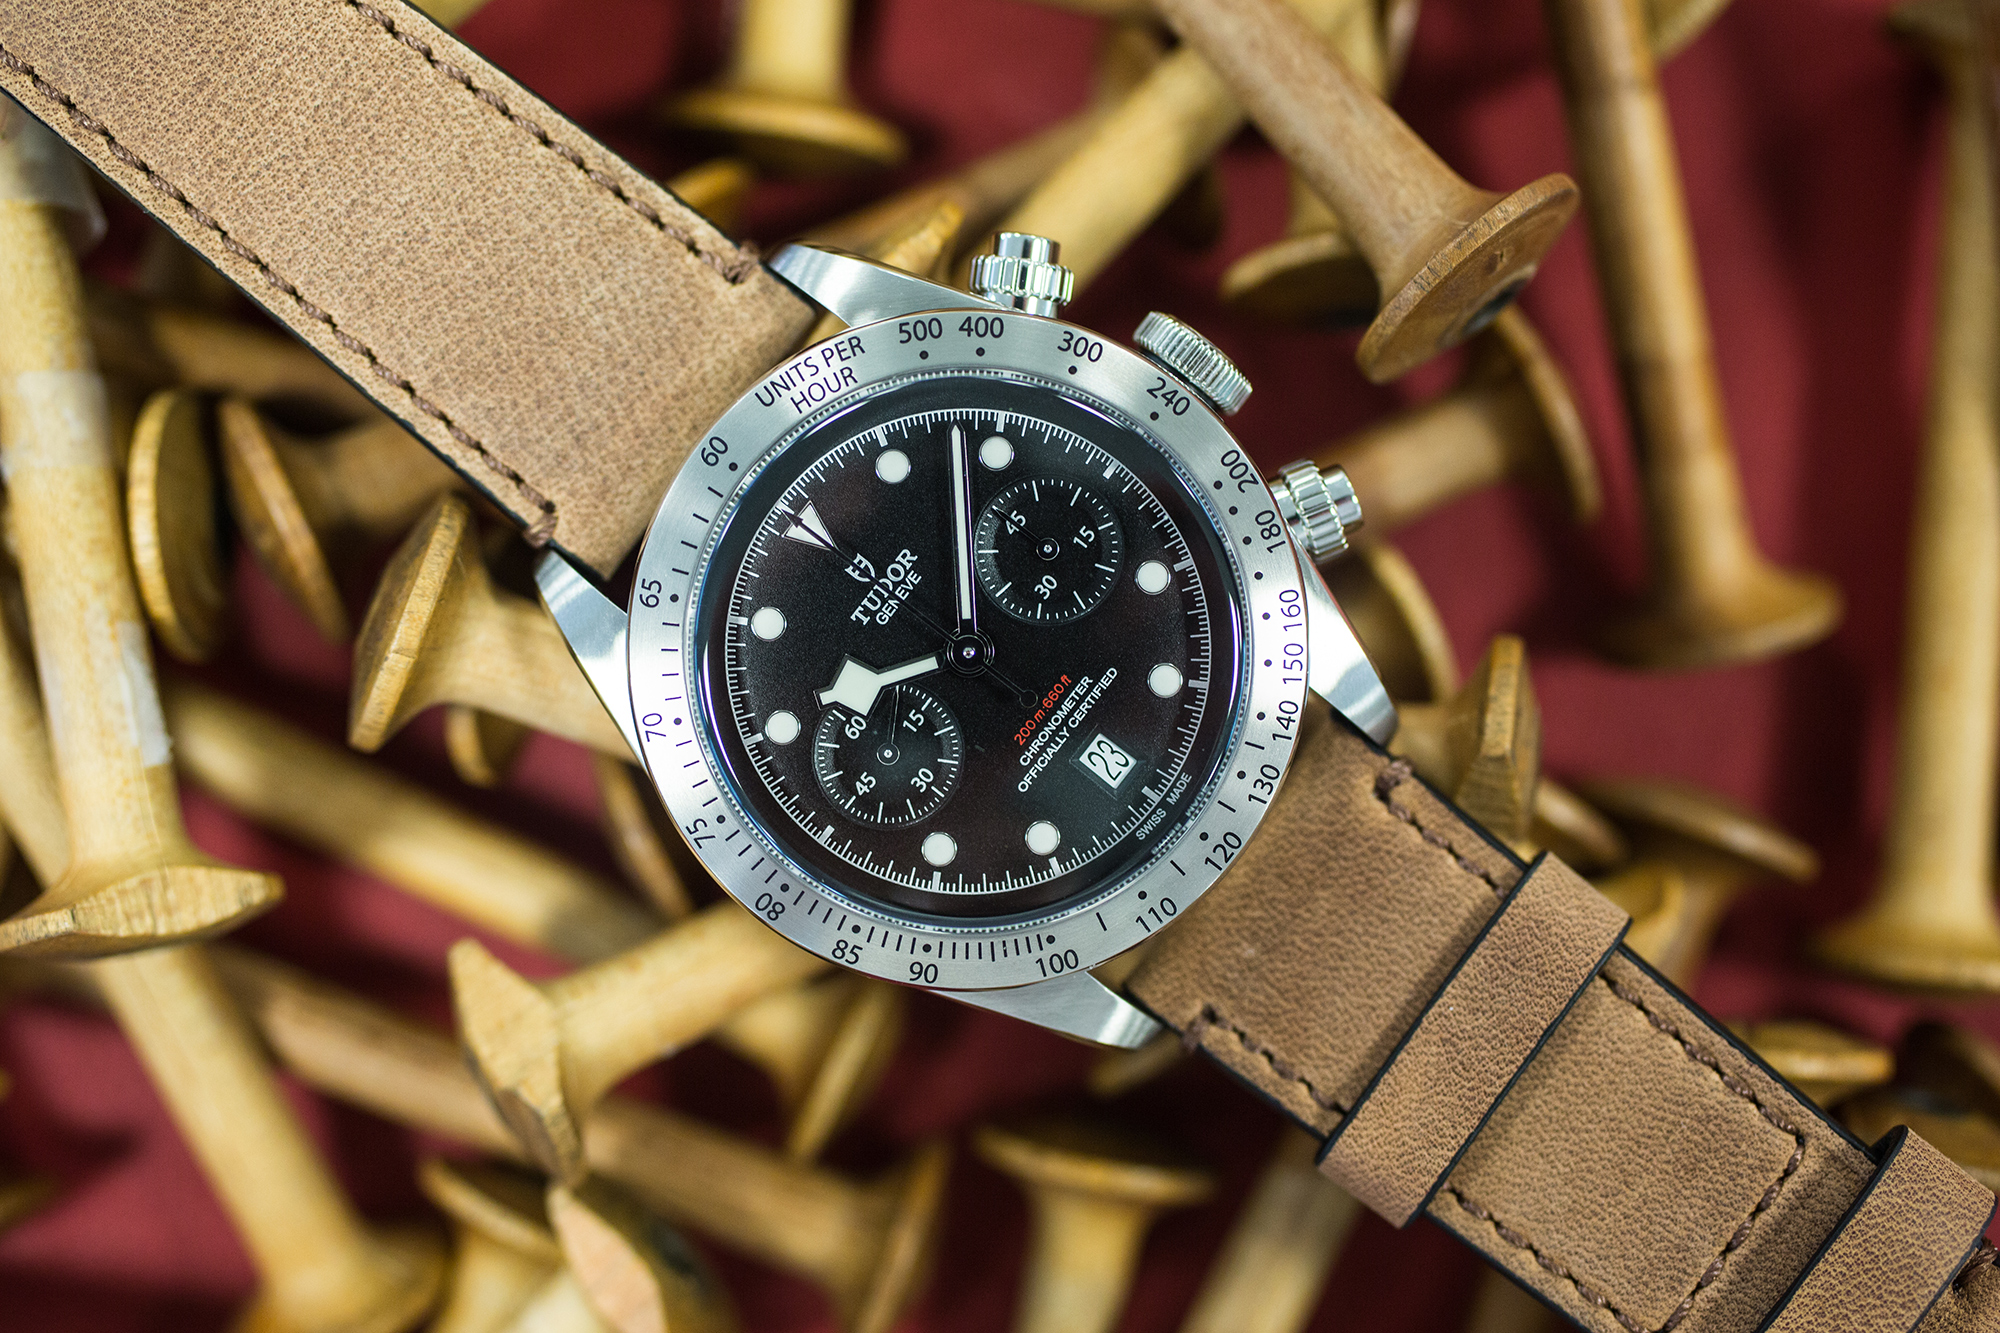 The Tudor Heritage Black Bay Chrono